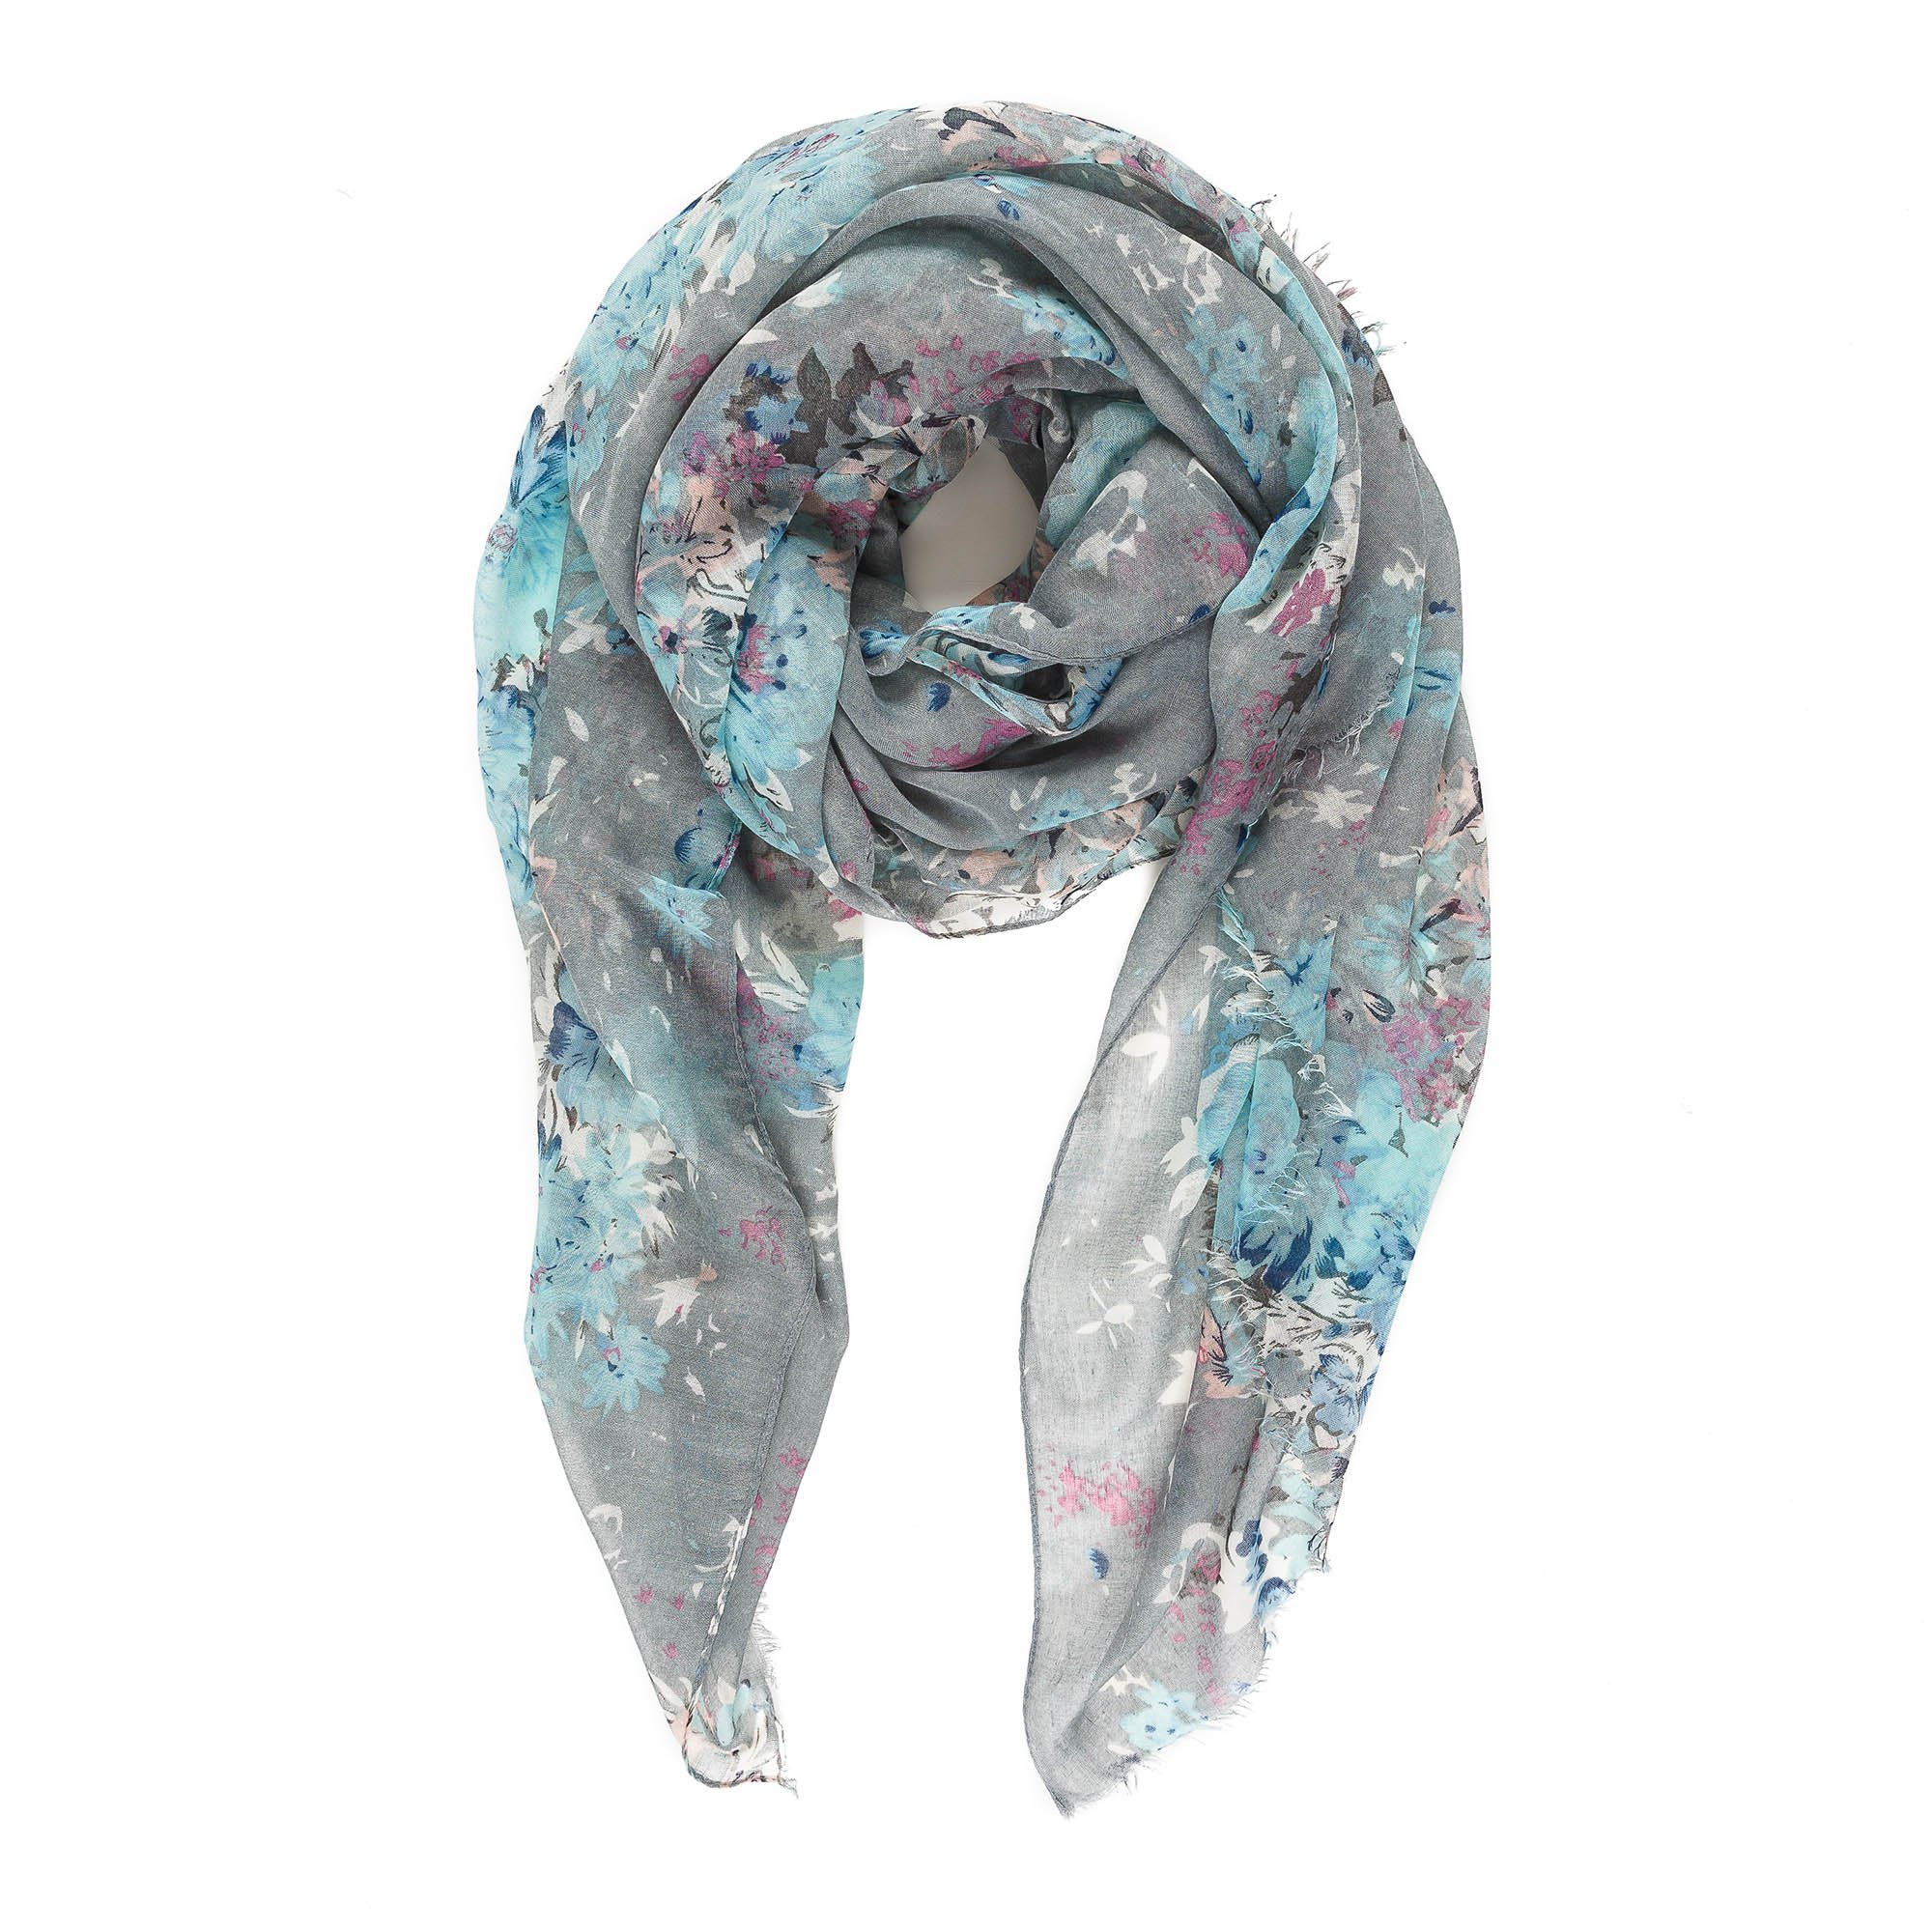 Scarf for Women Lightweight Fashion Fall Winter Gray Grey Floral Flower Scarves Shawl Wraps by Melifluos (P077-4)